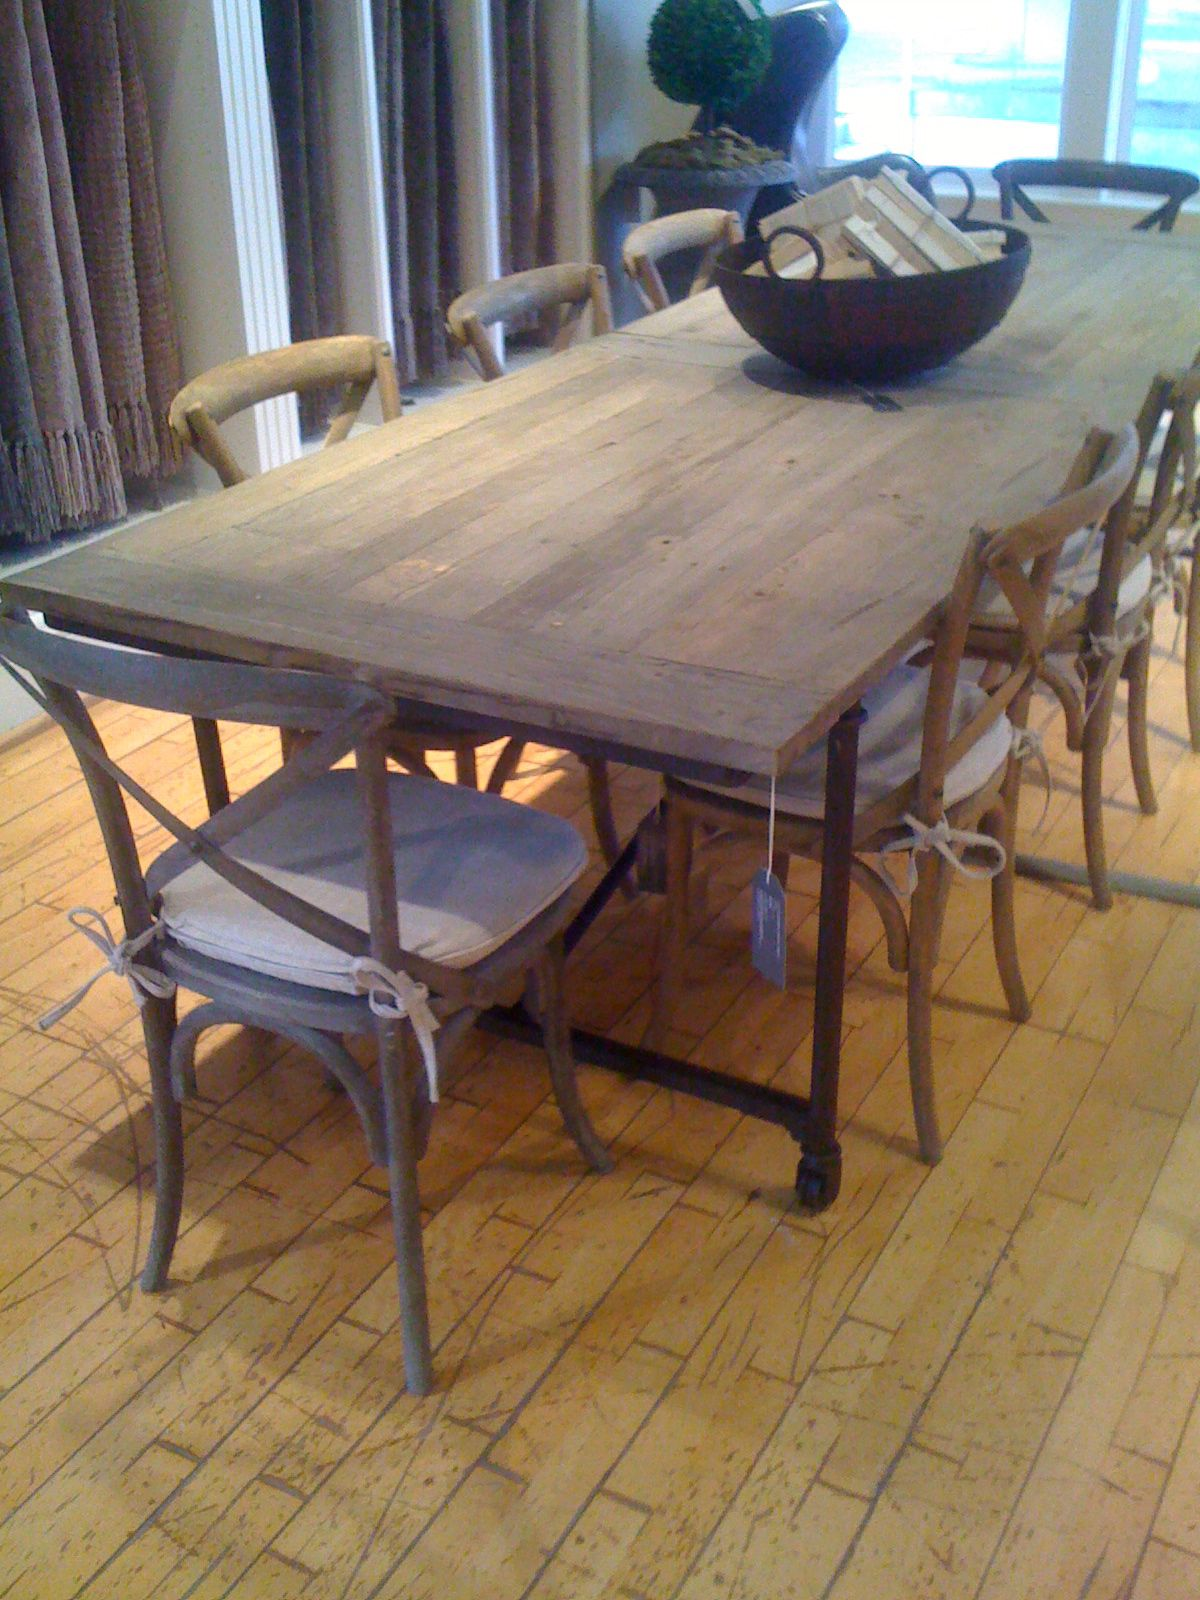 Restoration Hardware Table Made From A Reclaimed Door With Metal Legs On Casters Sweeeet